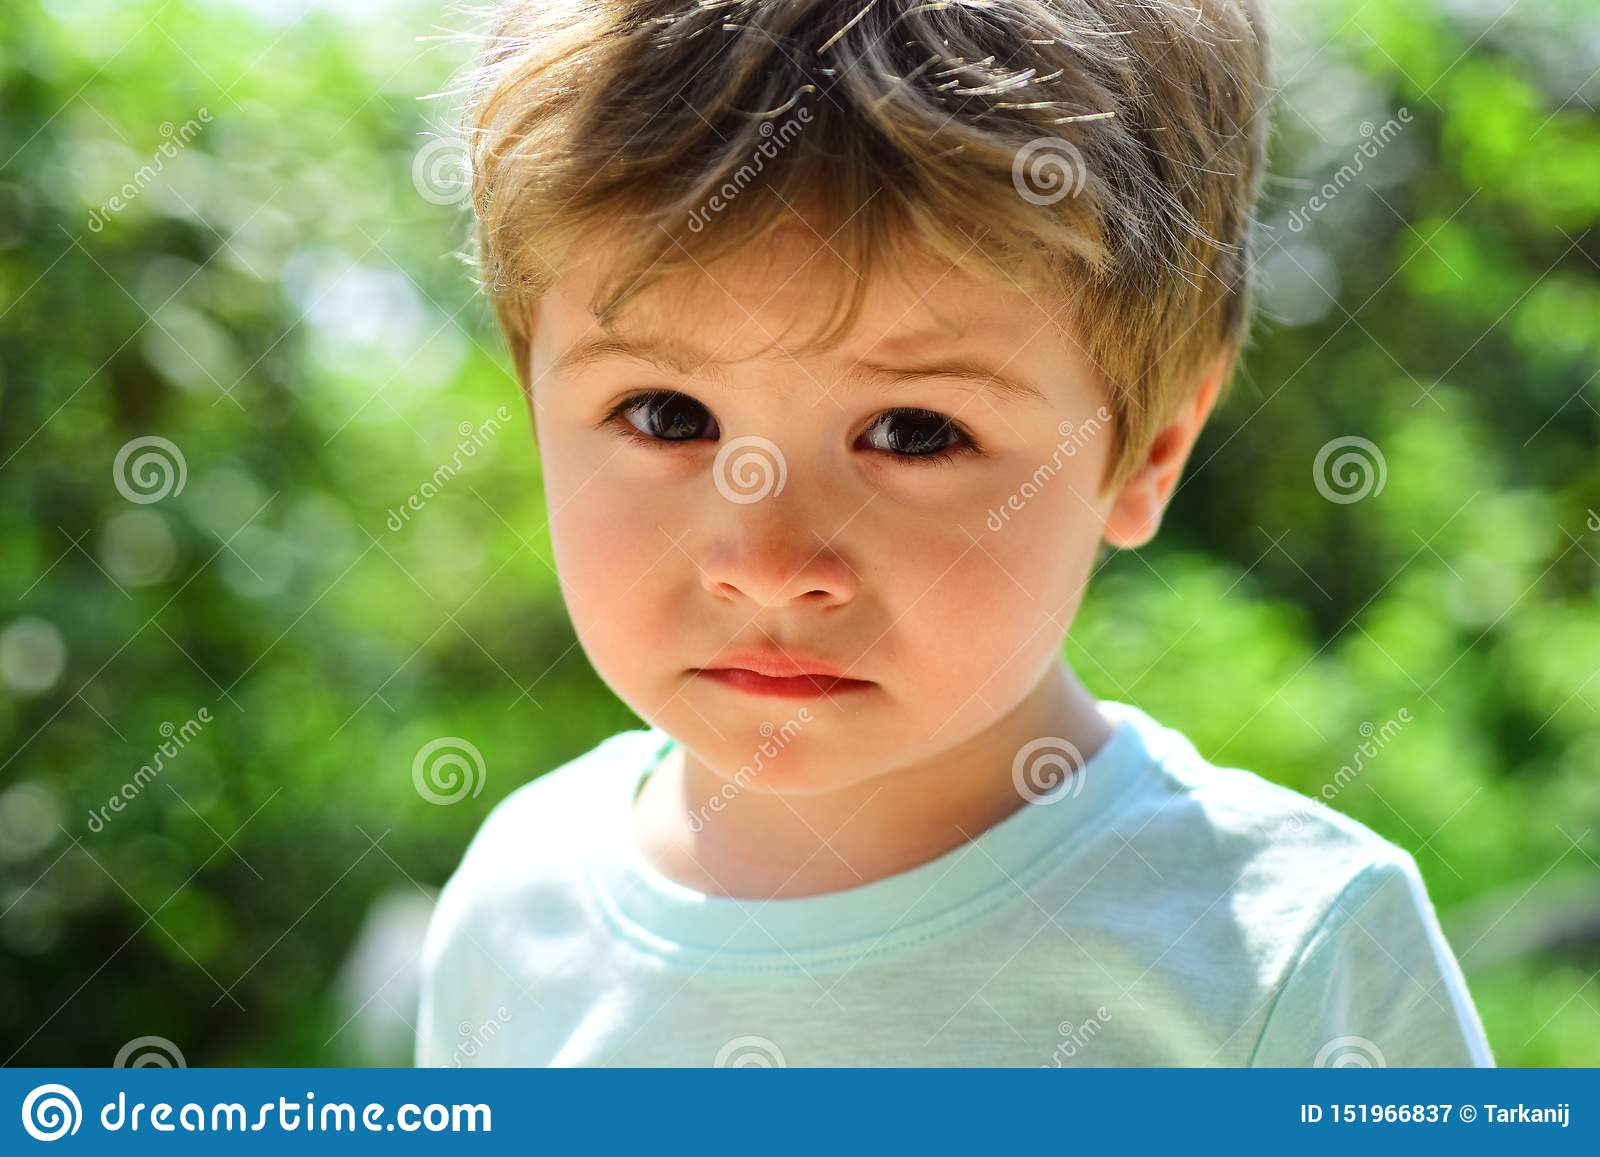 Sad child, close-up portrait. A frustrated child without mood. Sad emotions on a beautiful face. Child in nature